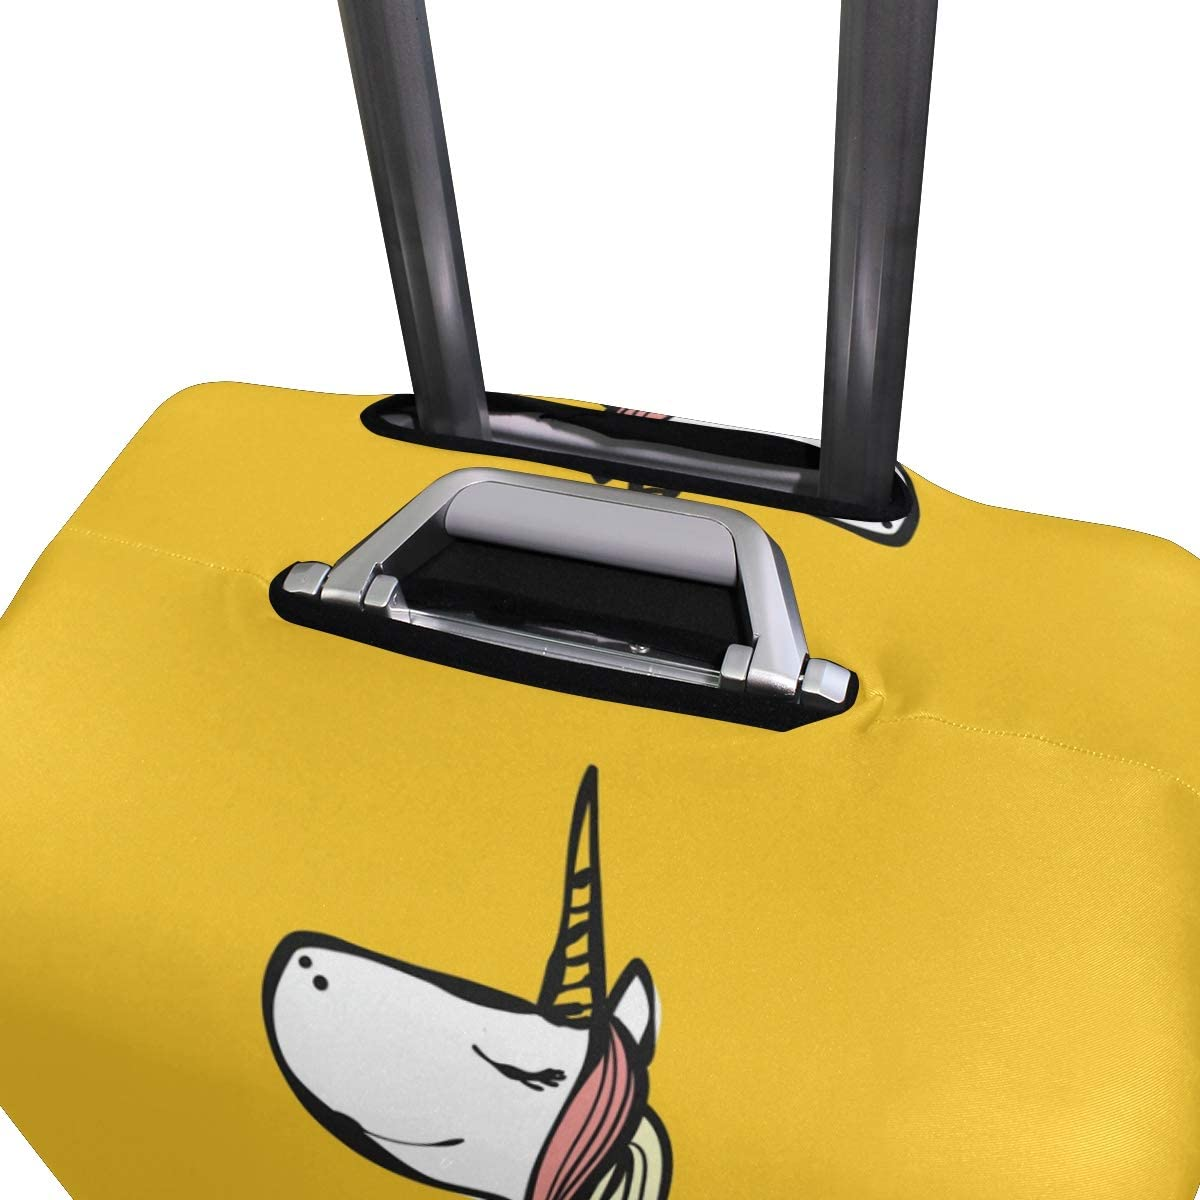 FOLPPLY Yellow Cartoon Unicorn Luggage Cover Baggage Suitcase Travel Protector Fit for 18-32 Inch